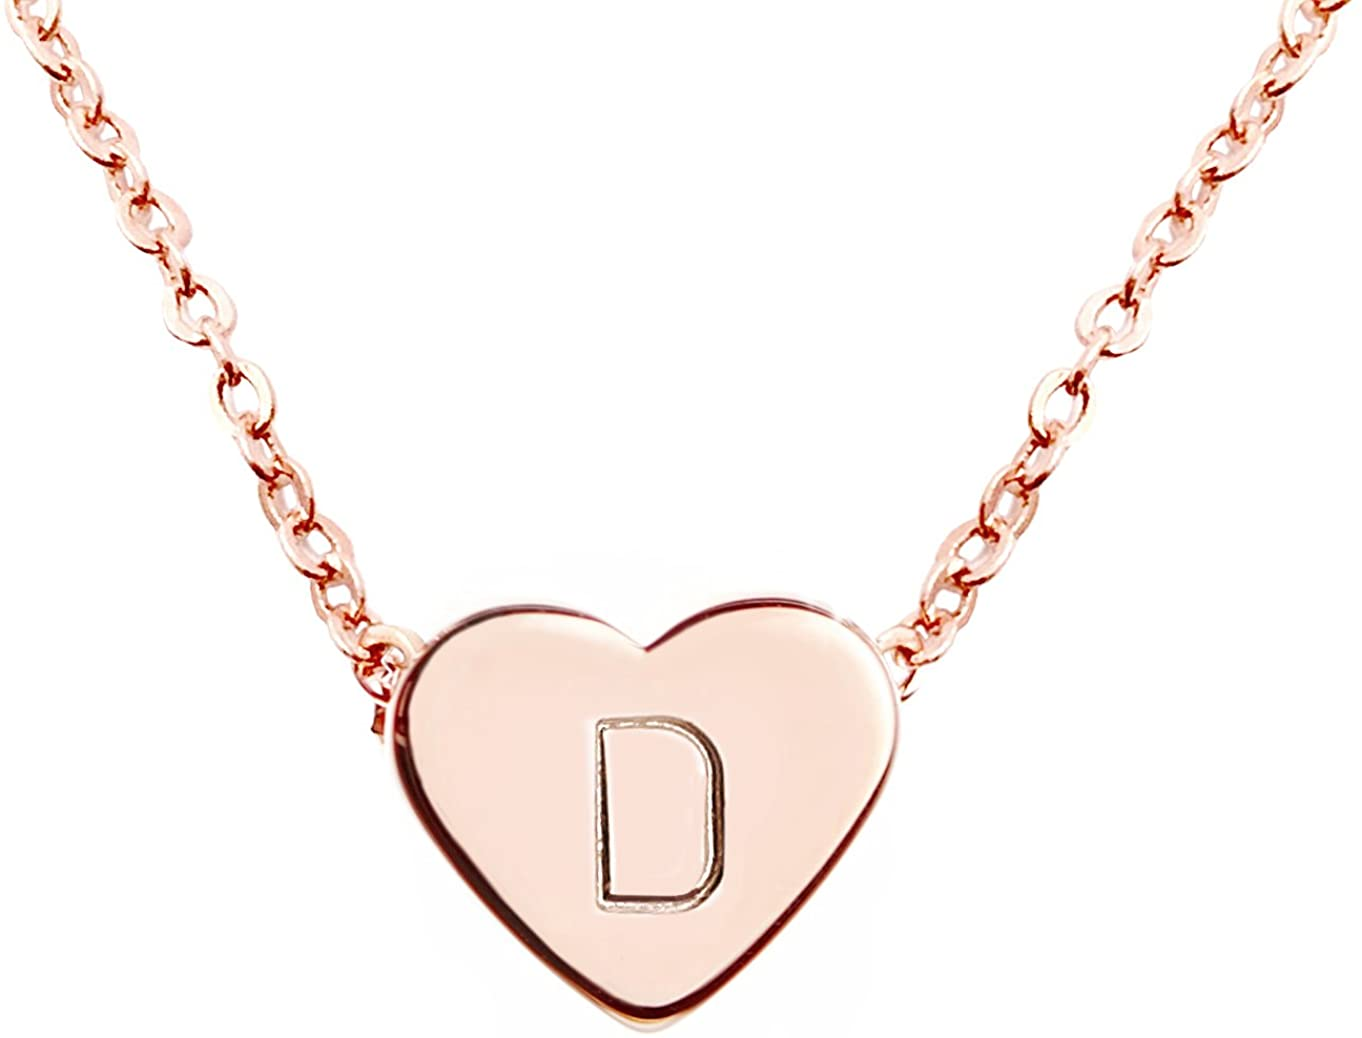 MignonandMignon Rose Gold Heart Necklace Initial Necklace Bridesmaid Gift Graduation Gift for Her